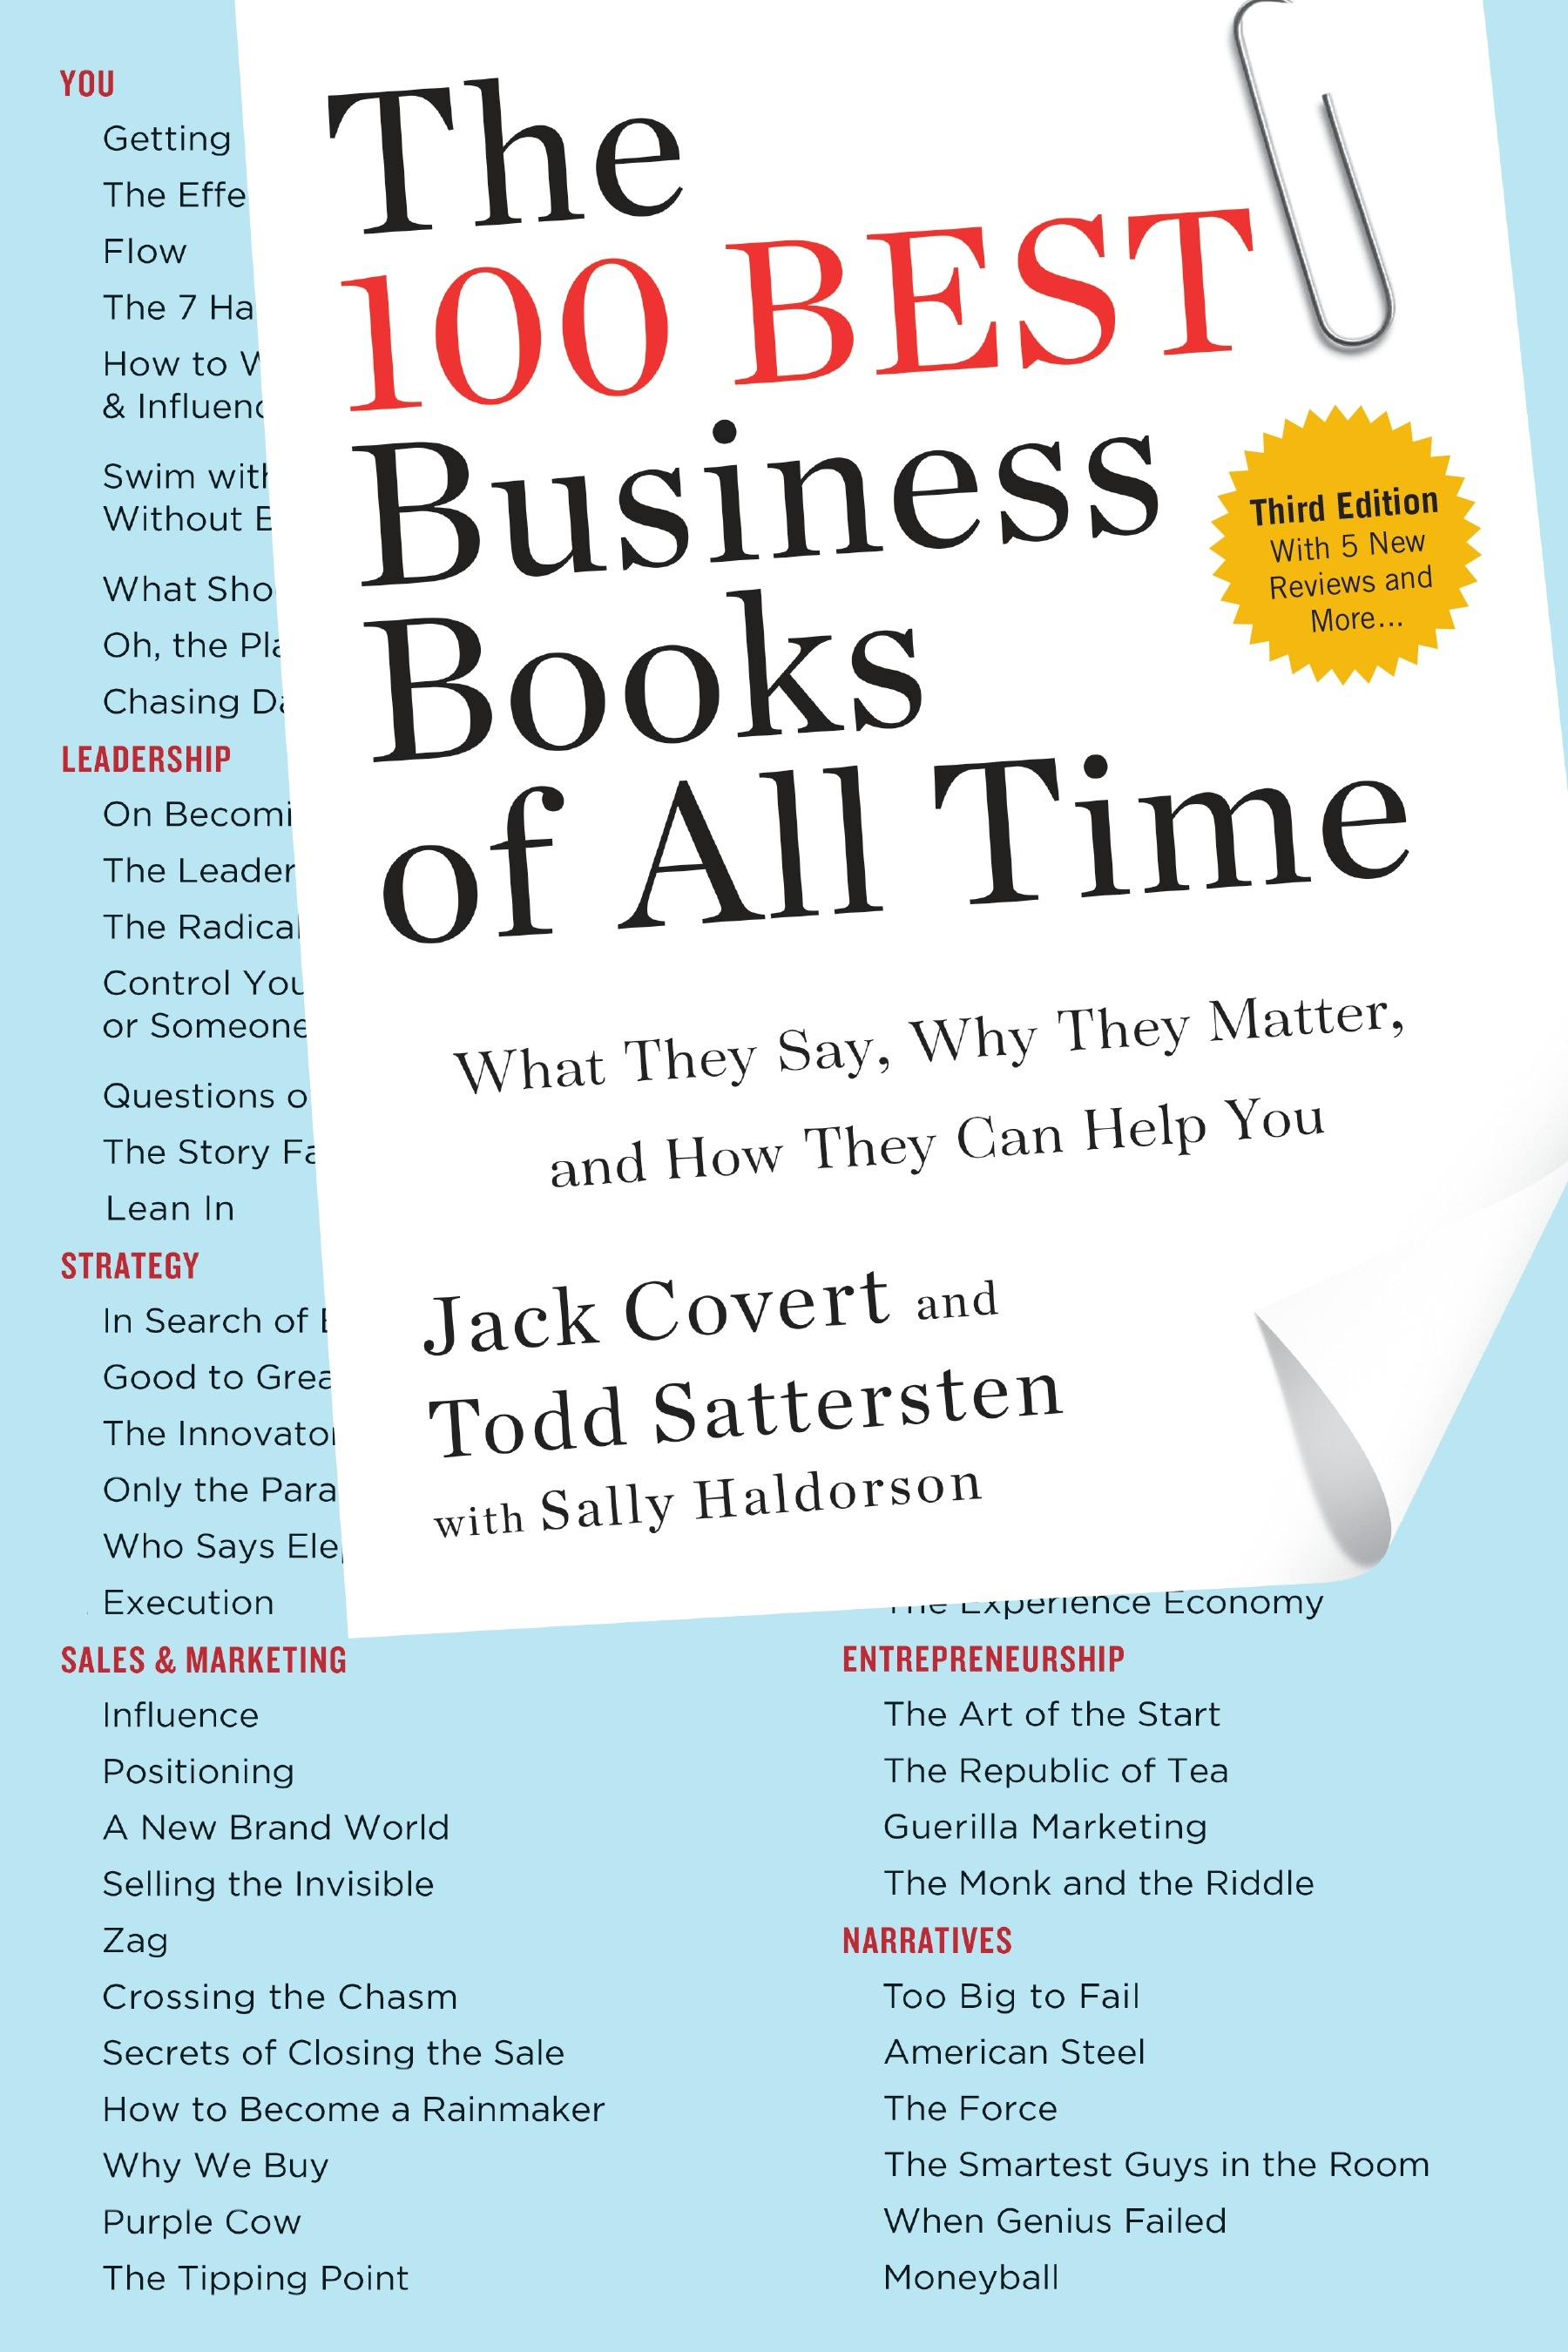 The 100 Best Business Books of All Time: What They Say, Why They